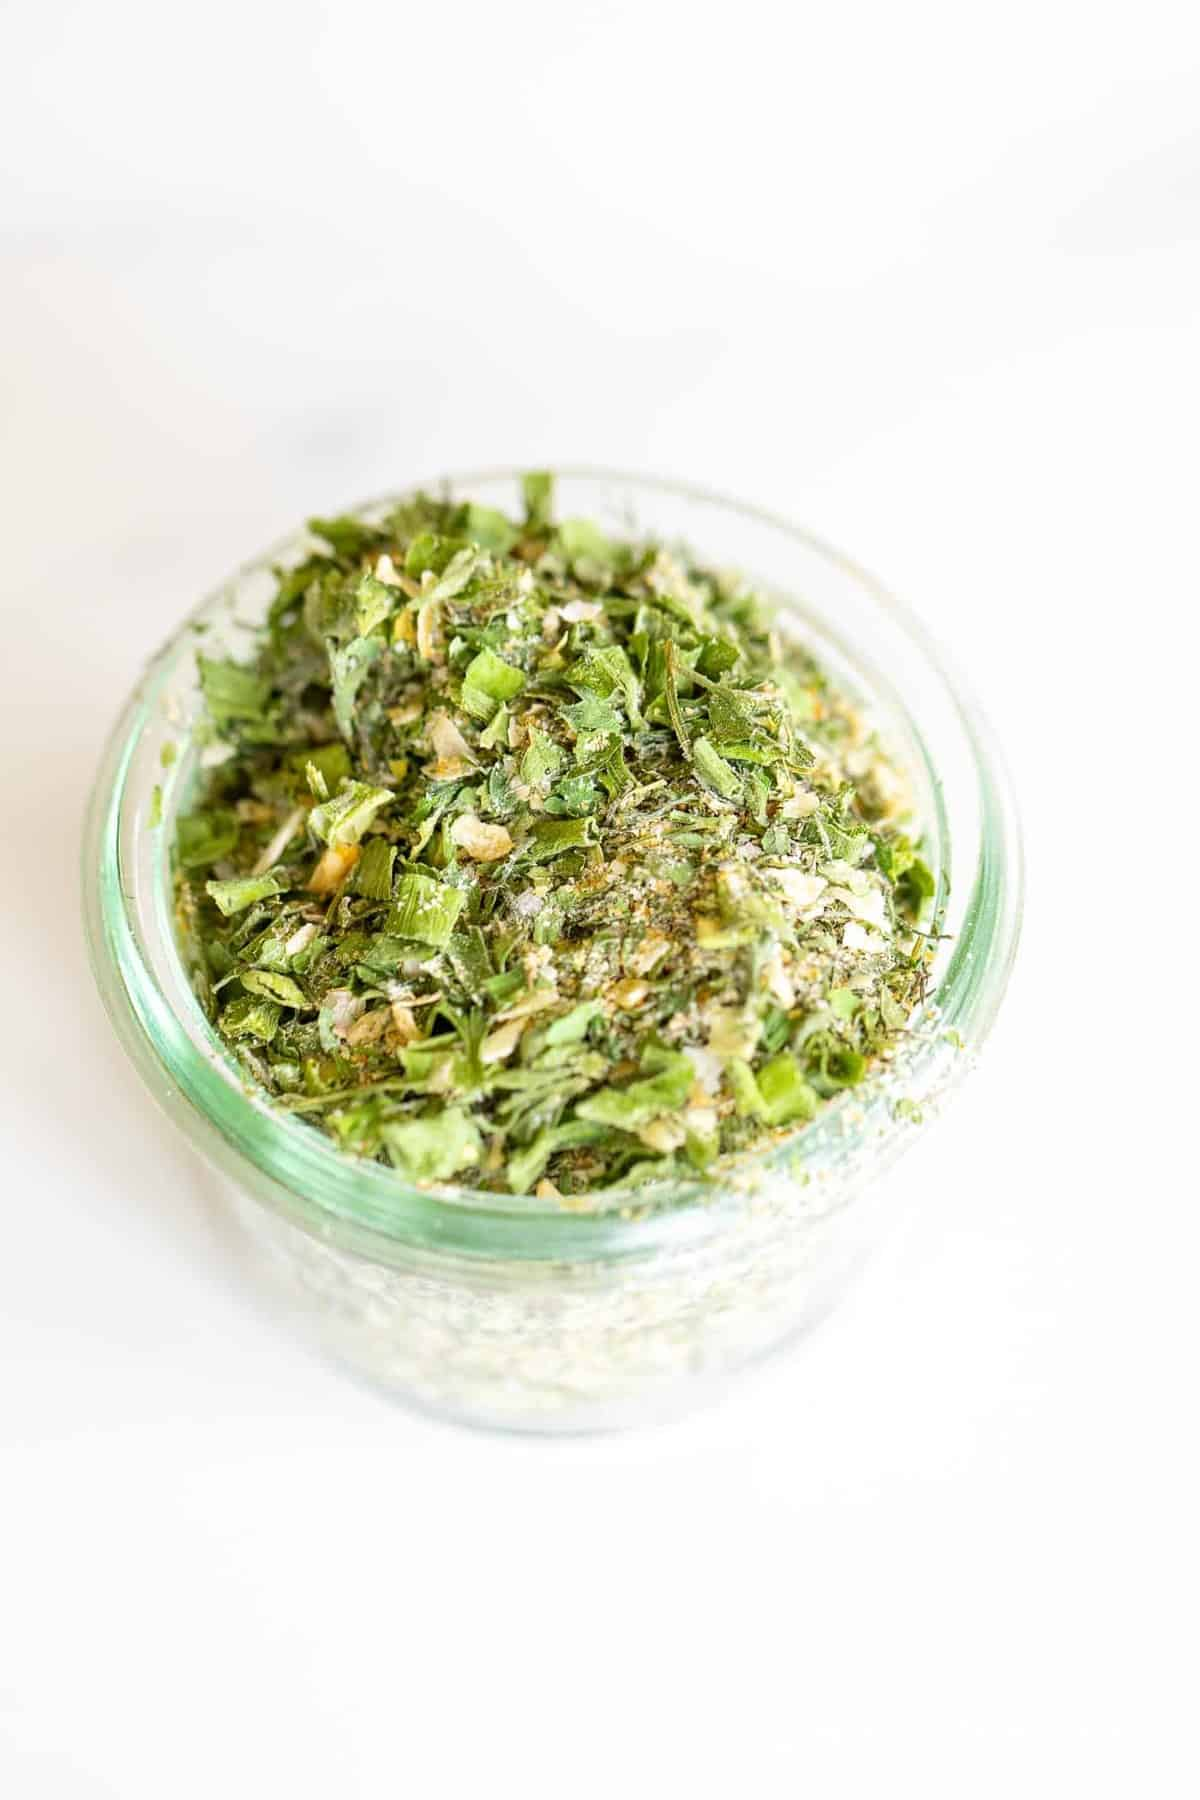 ranch herbs and spices in a jar